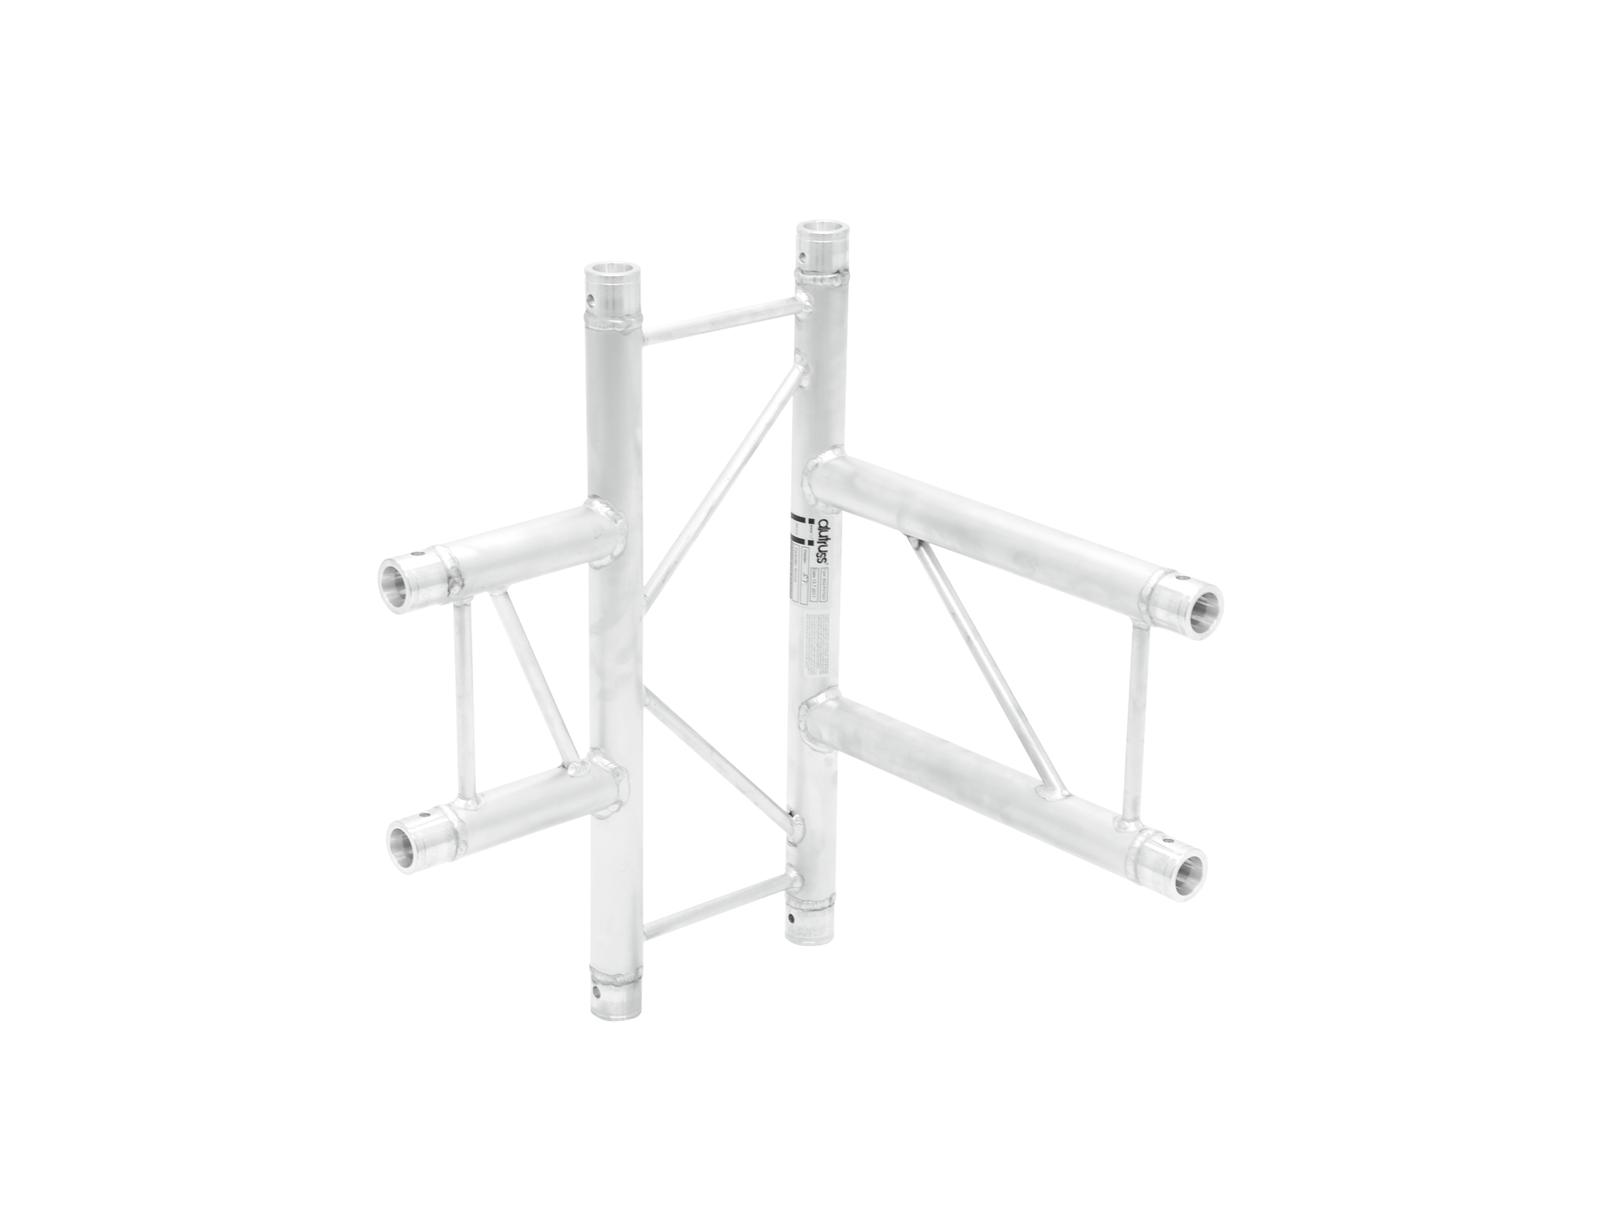 ALUTRUSS BILOCK E-GL22 T42-H 4